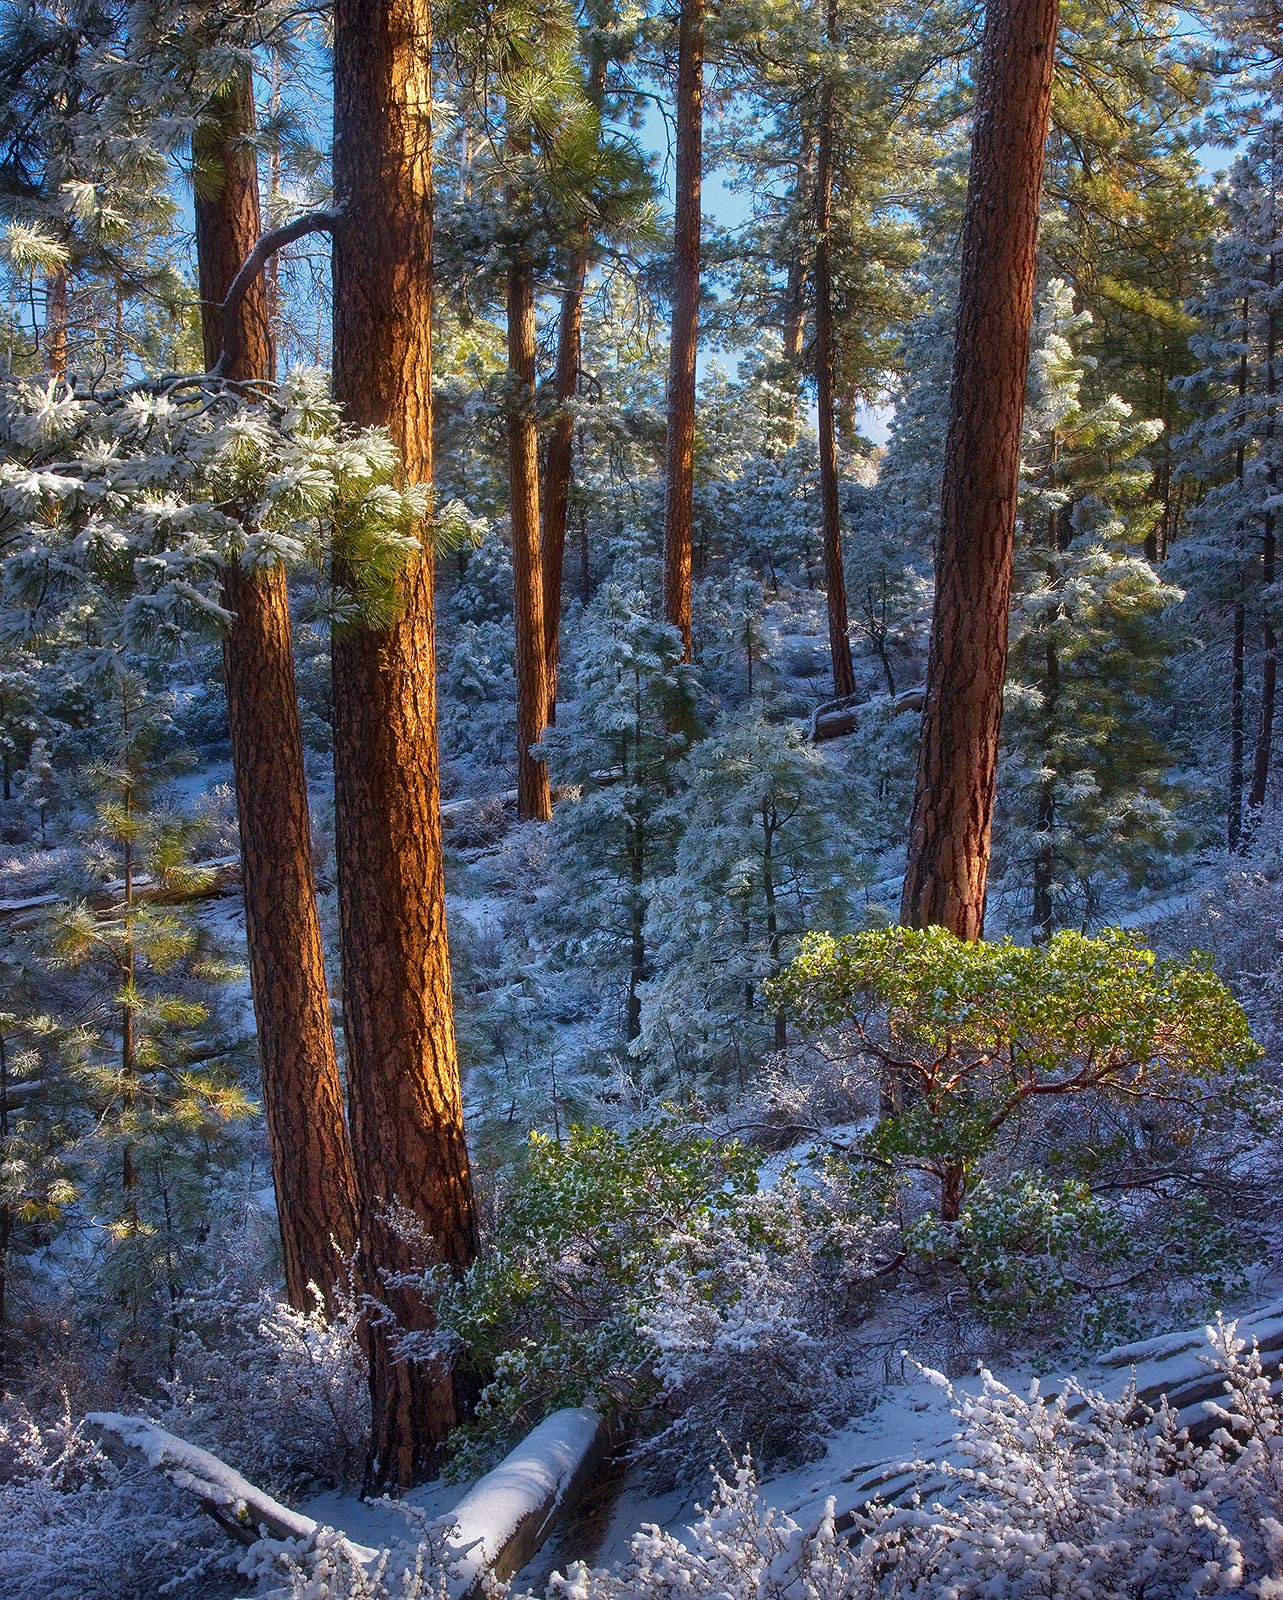 This image shows off some beautiful light on Ponderosa Pine forest in Oregon's Freemont Range, and the arragnement of colors...